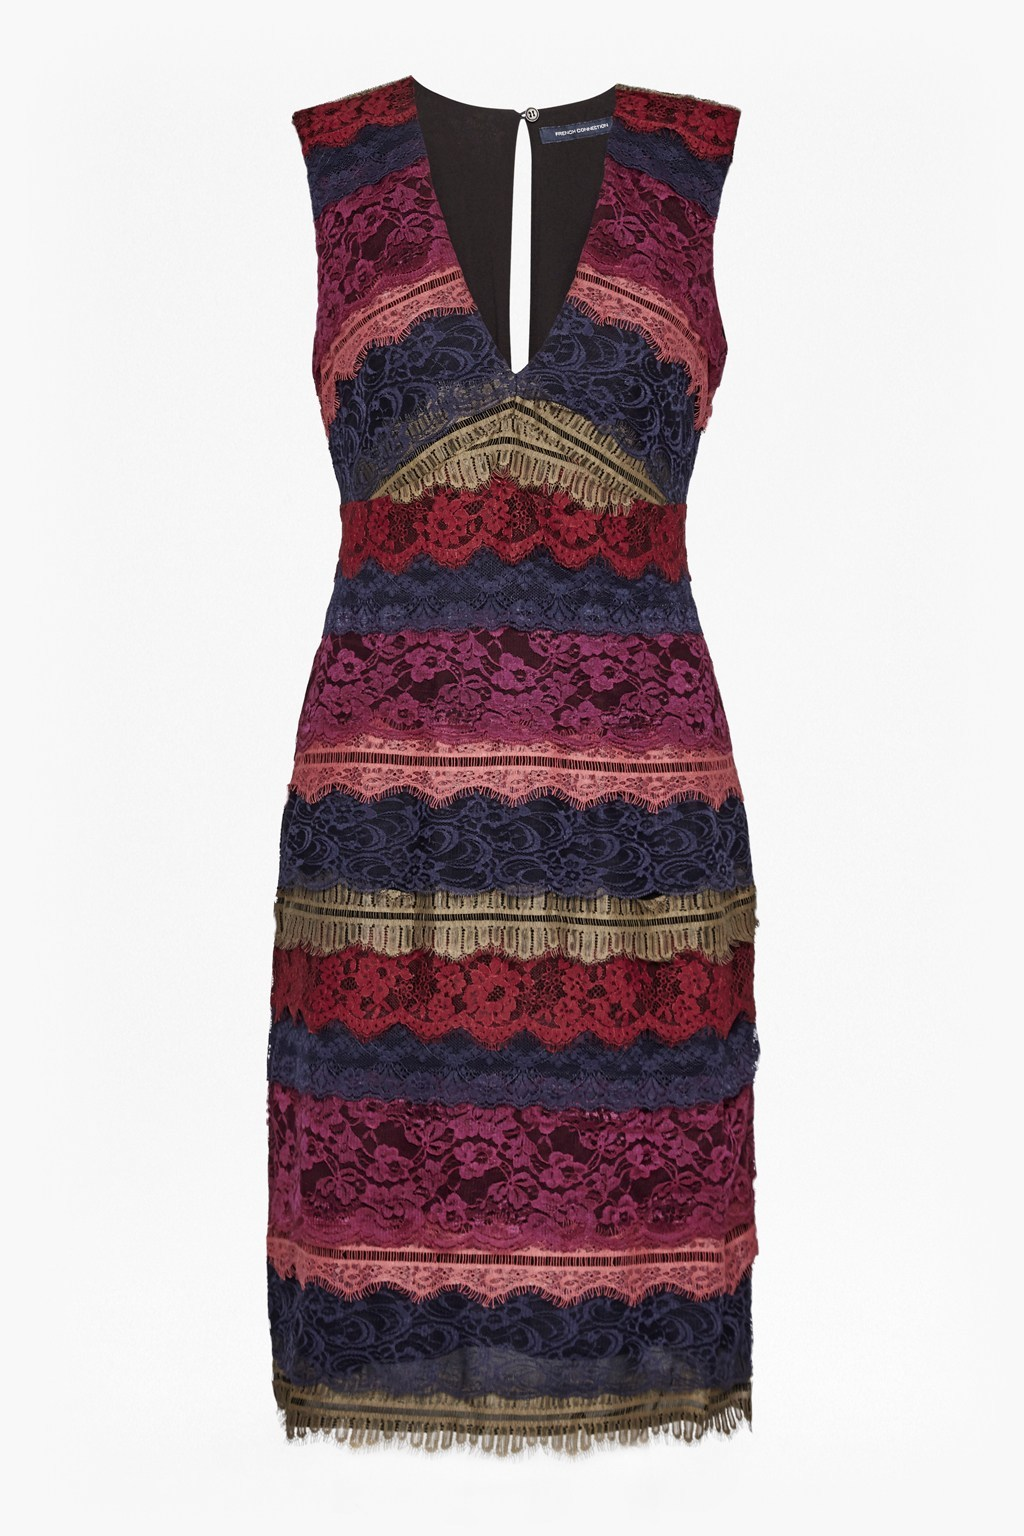 Dallaway Stripe Lace Pencil Dress Zinfandel Multi - style: shift; neckline: v-neck; fit: tailored/fitted; pattern: horizontal stripes; sleeve style: sleeveless; predominant colour: burgundy; secondary colour: navy; occasions: evening; length: on the knee; fibres: polyester/polyamide - 100%; sleeve length: sleeveless; texture group: lace; pattern type: fabric; multicoloured: multicoloured; season: a/w 2016; wardrobe: event